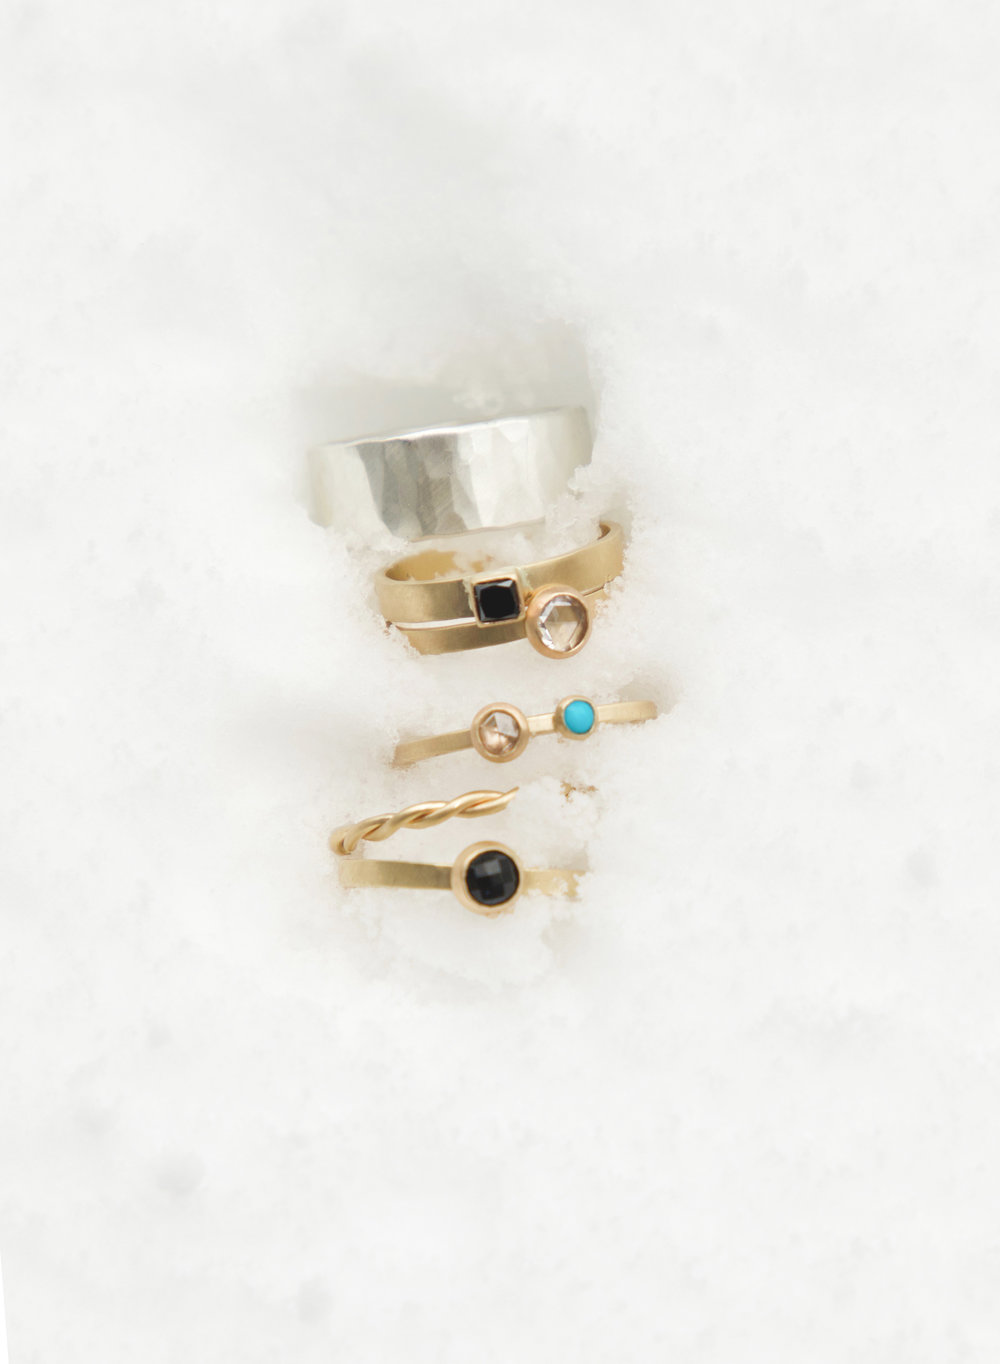 RebeccaMirGrady_Rings_in_Snow.jpg